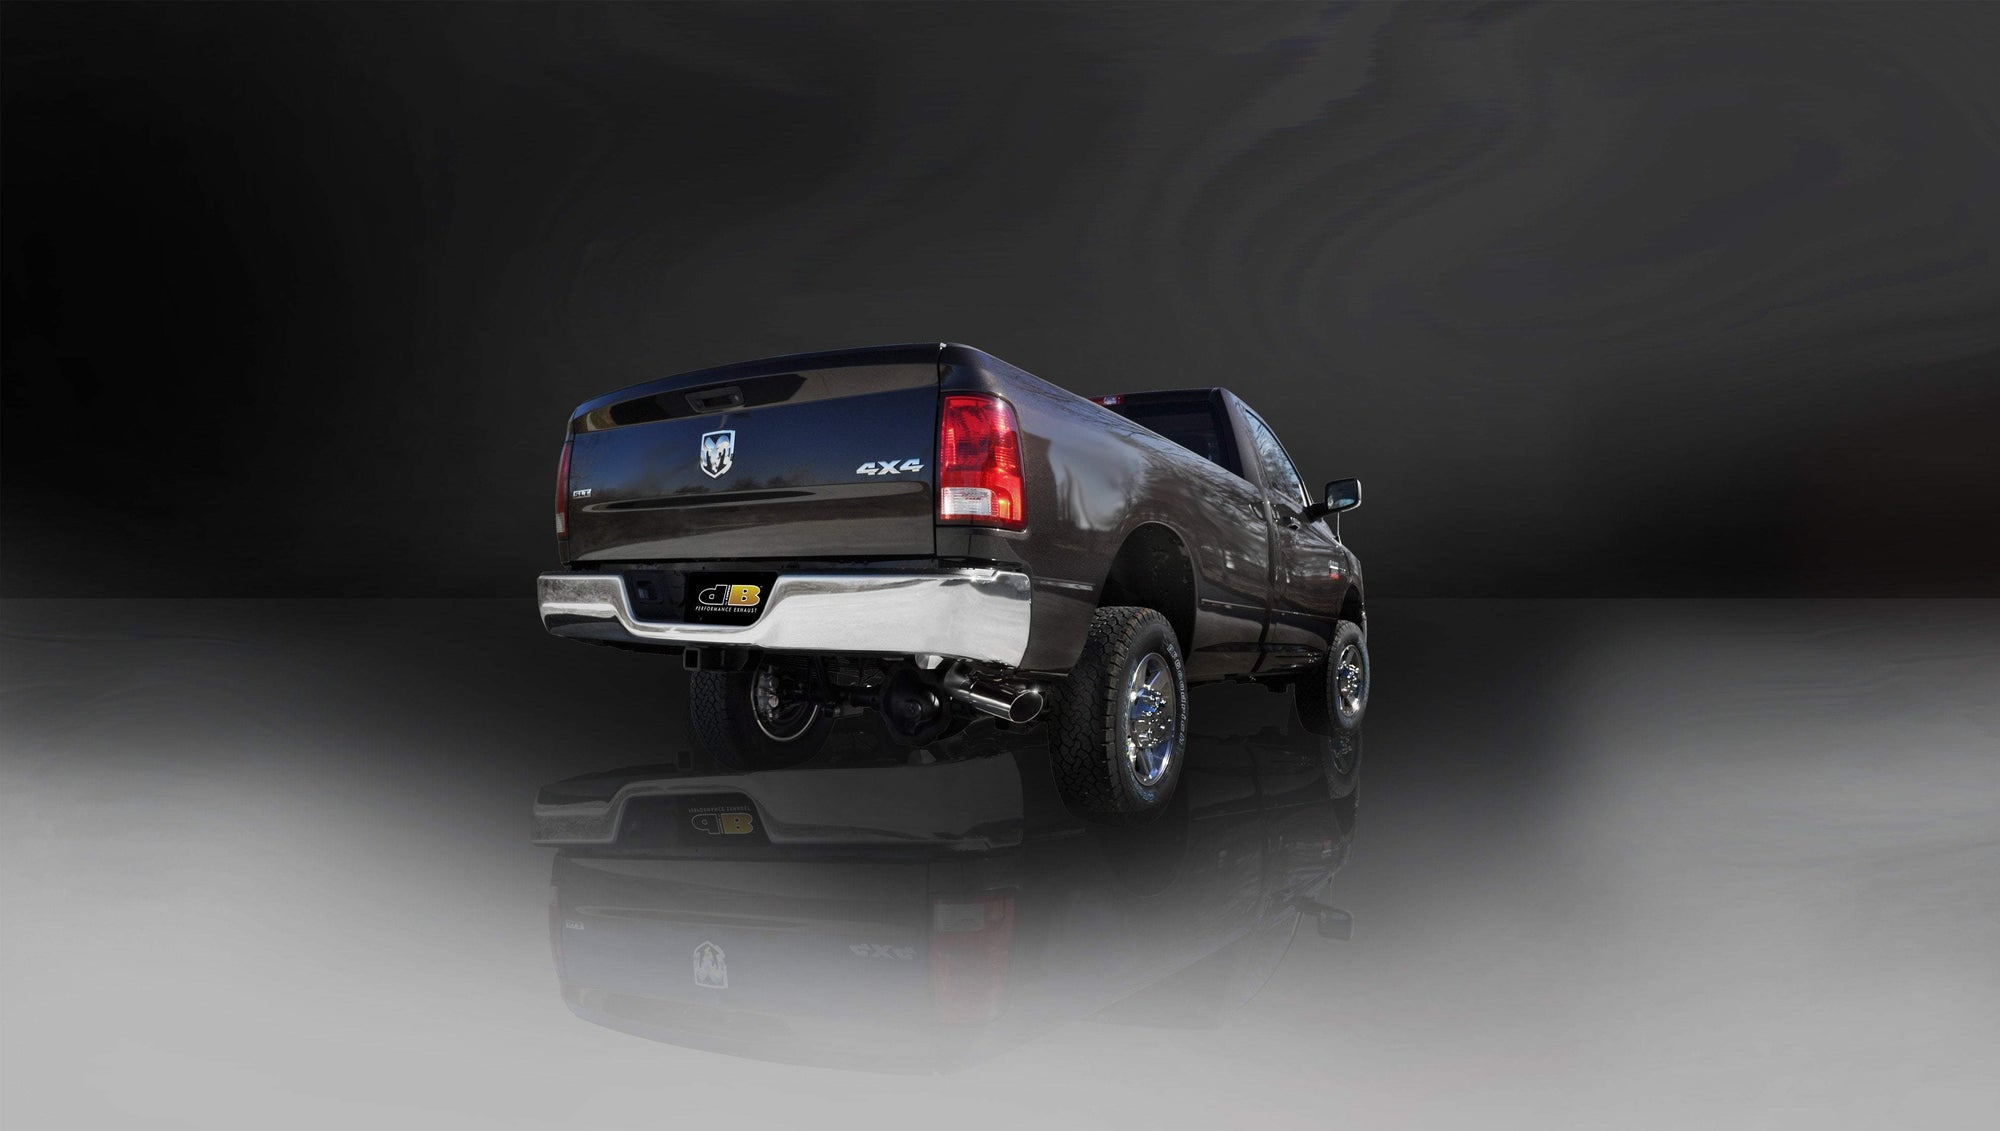 "dB Cat-Back Exhaust Polished / Sport / Single Side - Single 4in Slash Cut 2010-2013 Dodge RAM 2500 5.7L V8 Quad Cab Short Bed 3.0"" Single Side Exit Cat-Back Exhaust System with 4.0"" Tip (24480) Sport Sound Level"